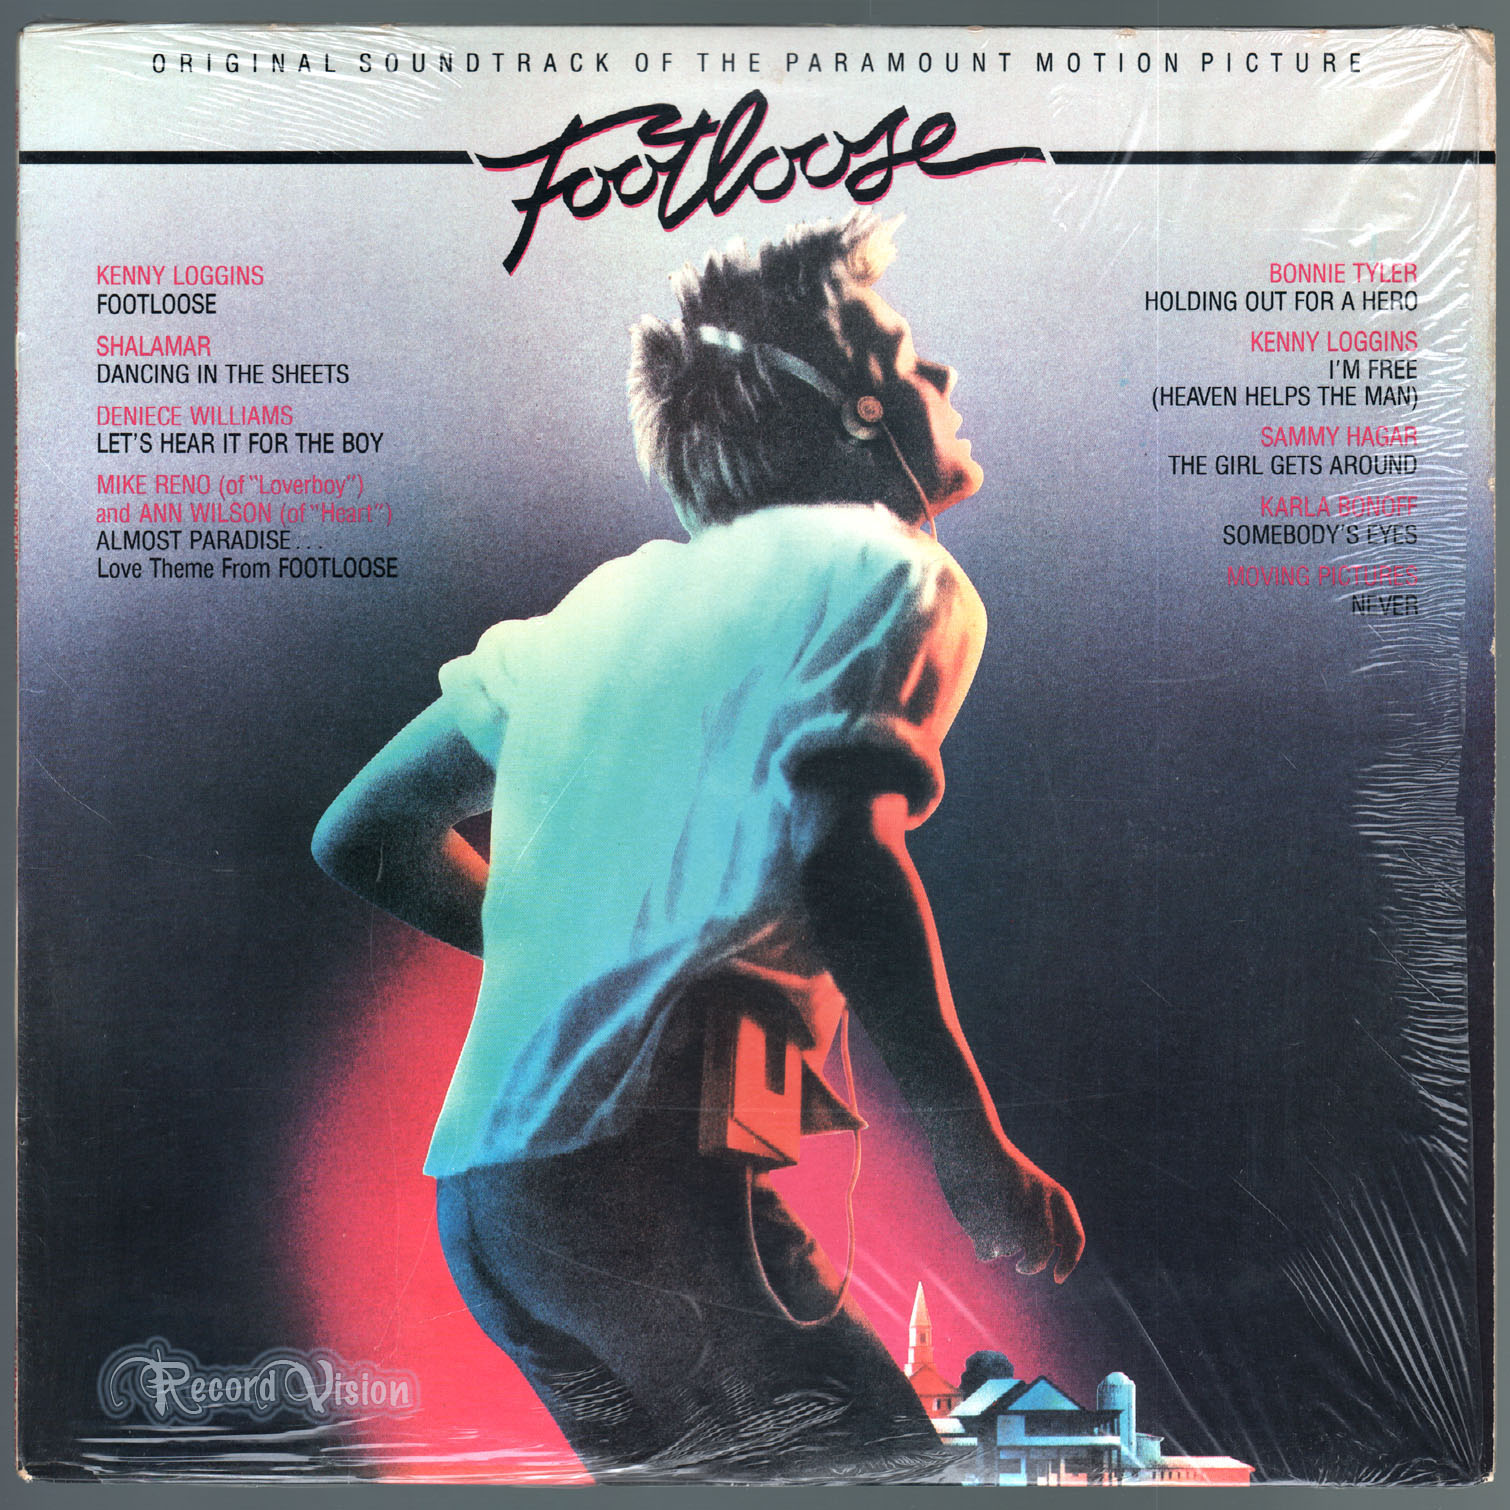 ASSORTED (BONNIE TYLER) - Footloose - 33T